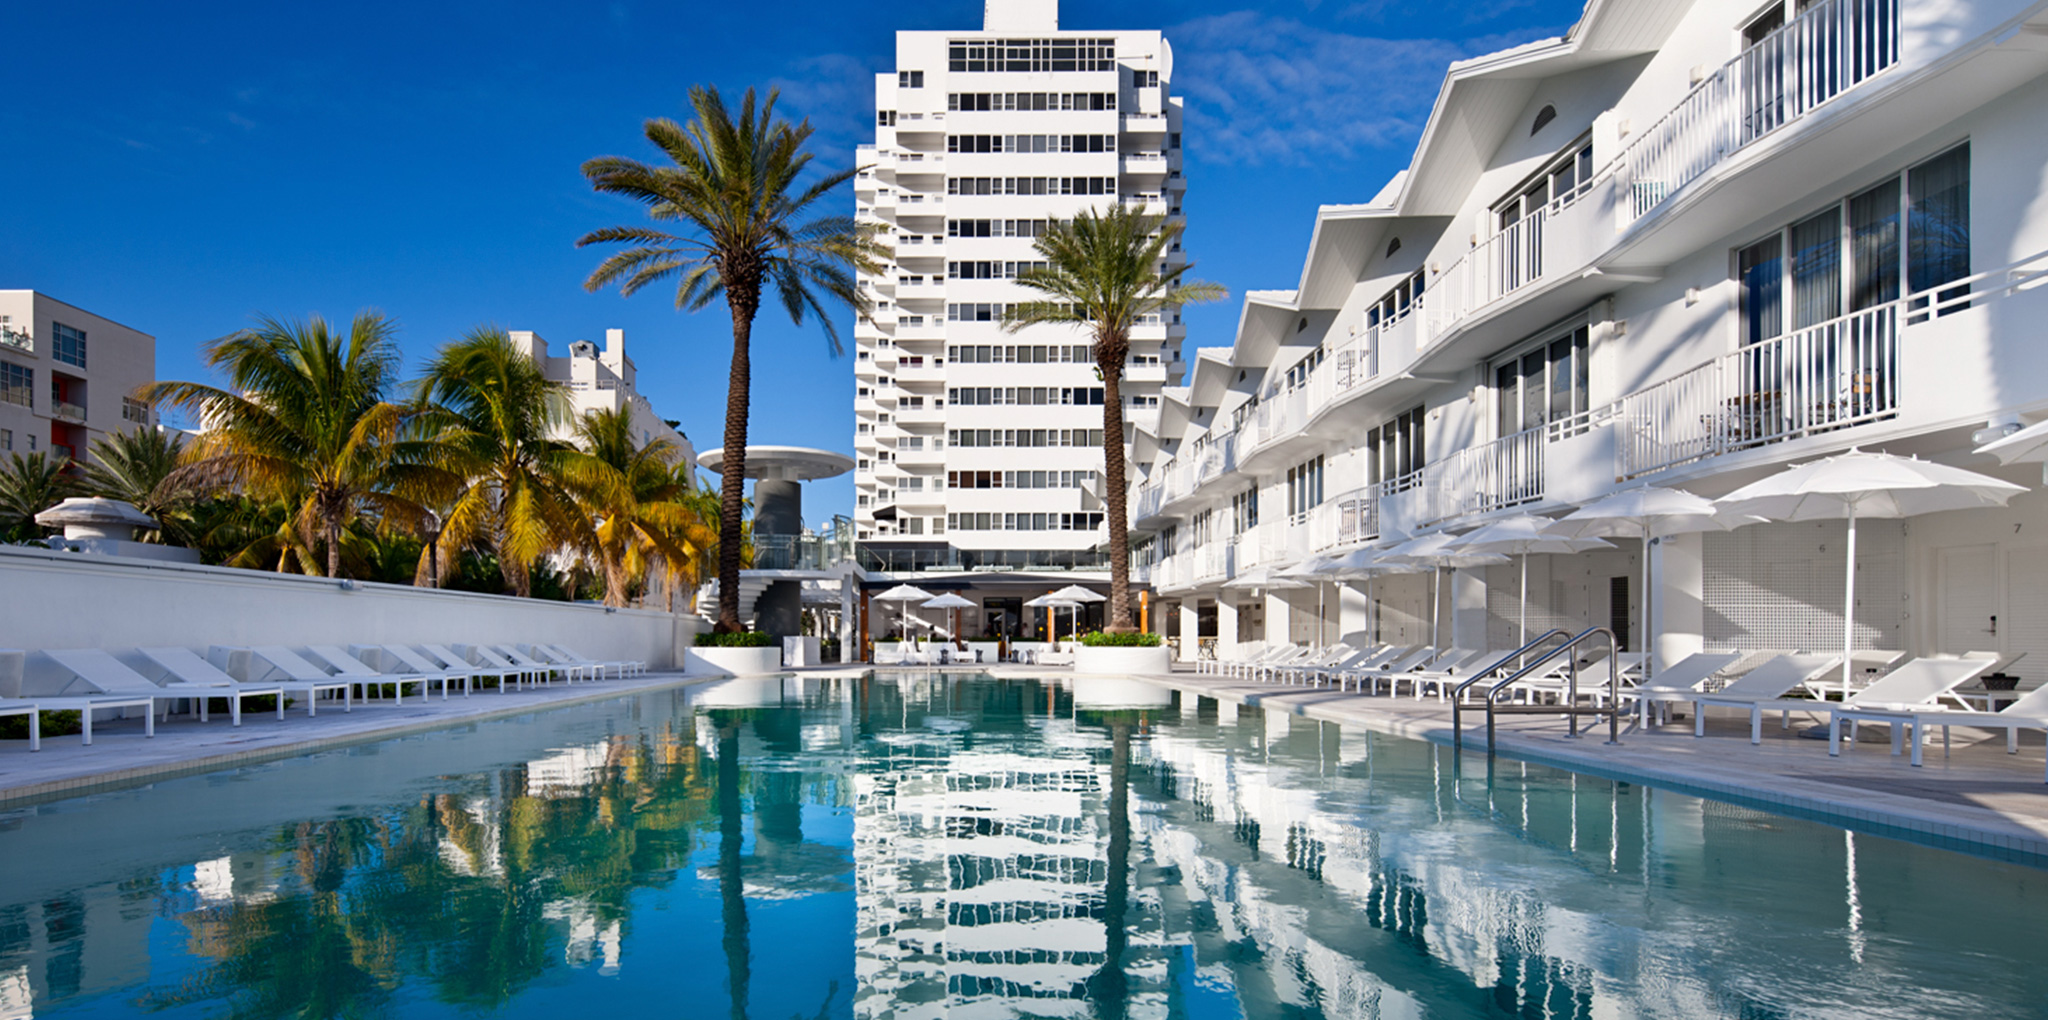 Nau Hotel South Beach The Best Beaches In World